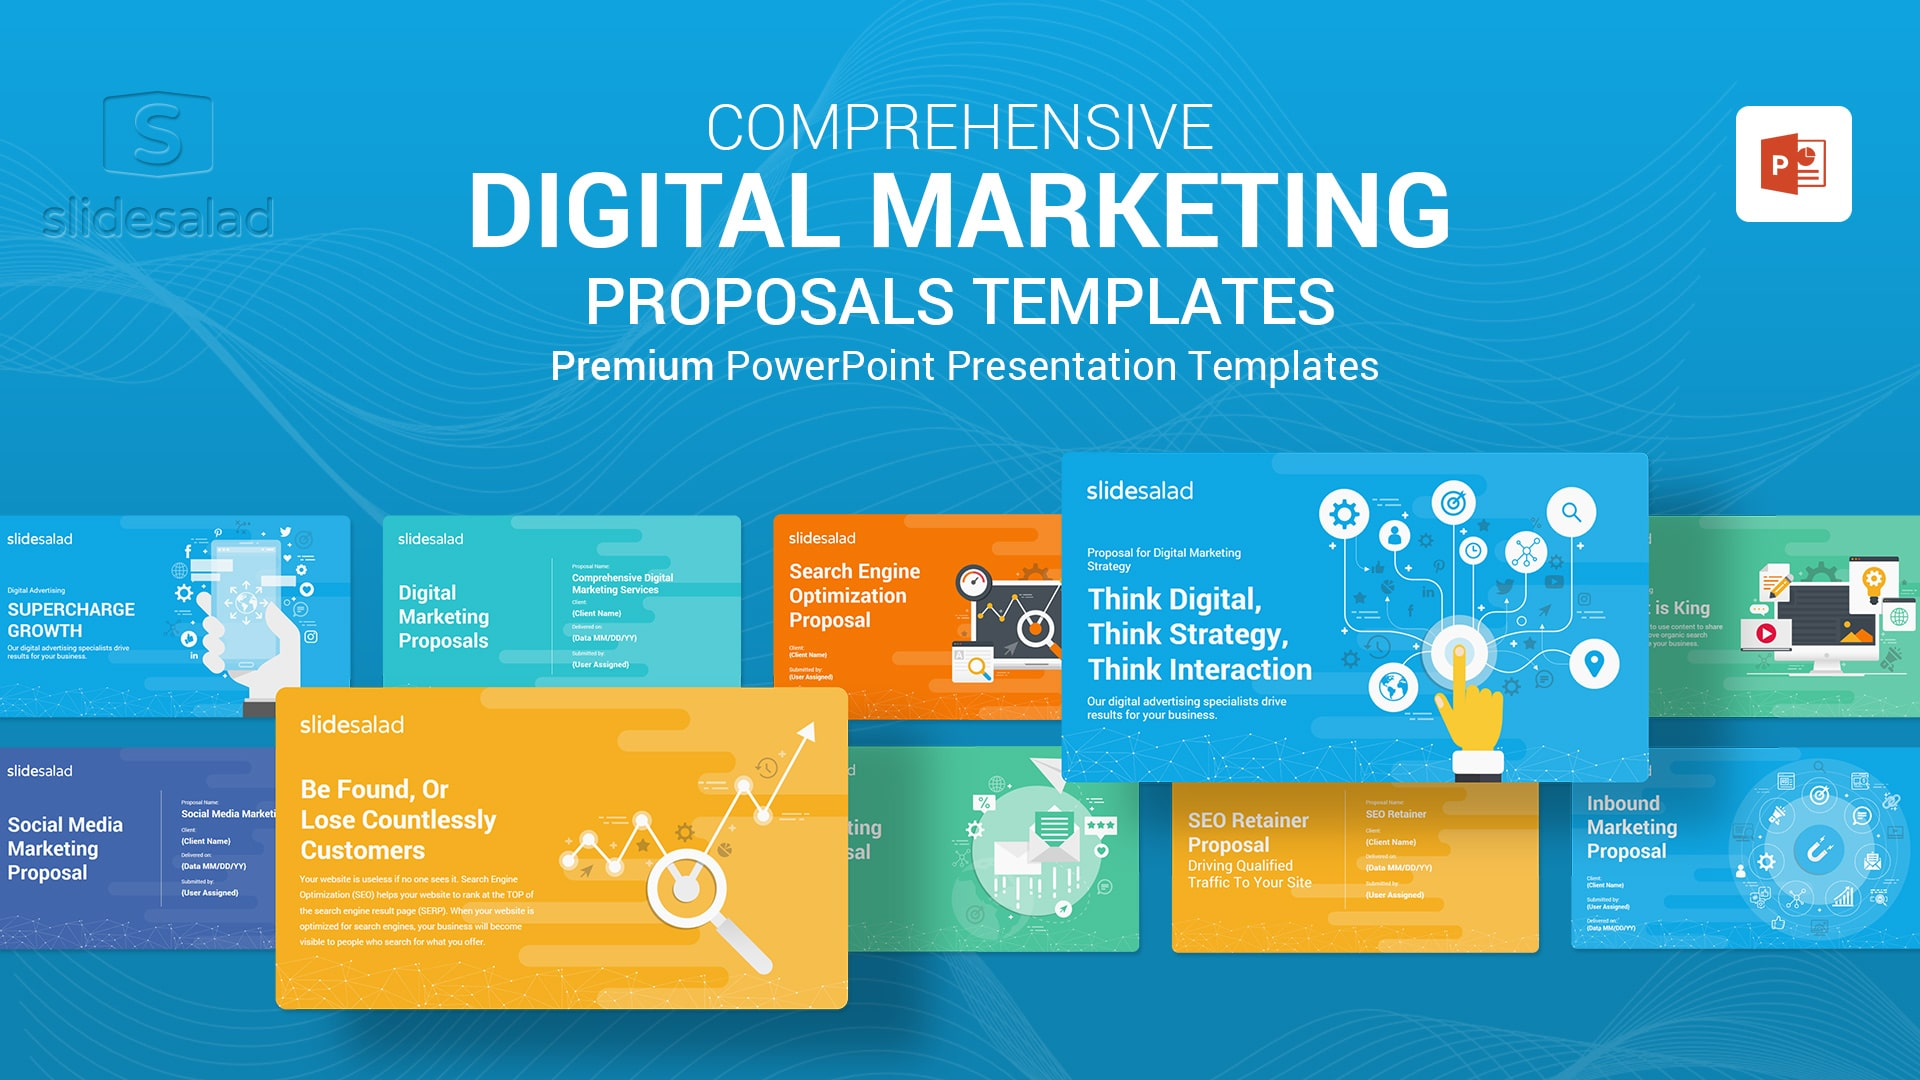 Digital Marketing Proposals PowerPoint Templates - Completely Customizable Online Marketing Proposal PowerPoint Template